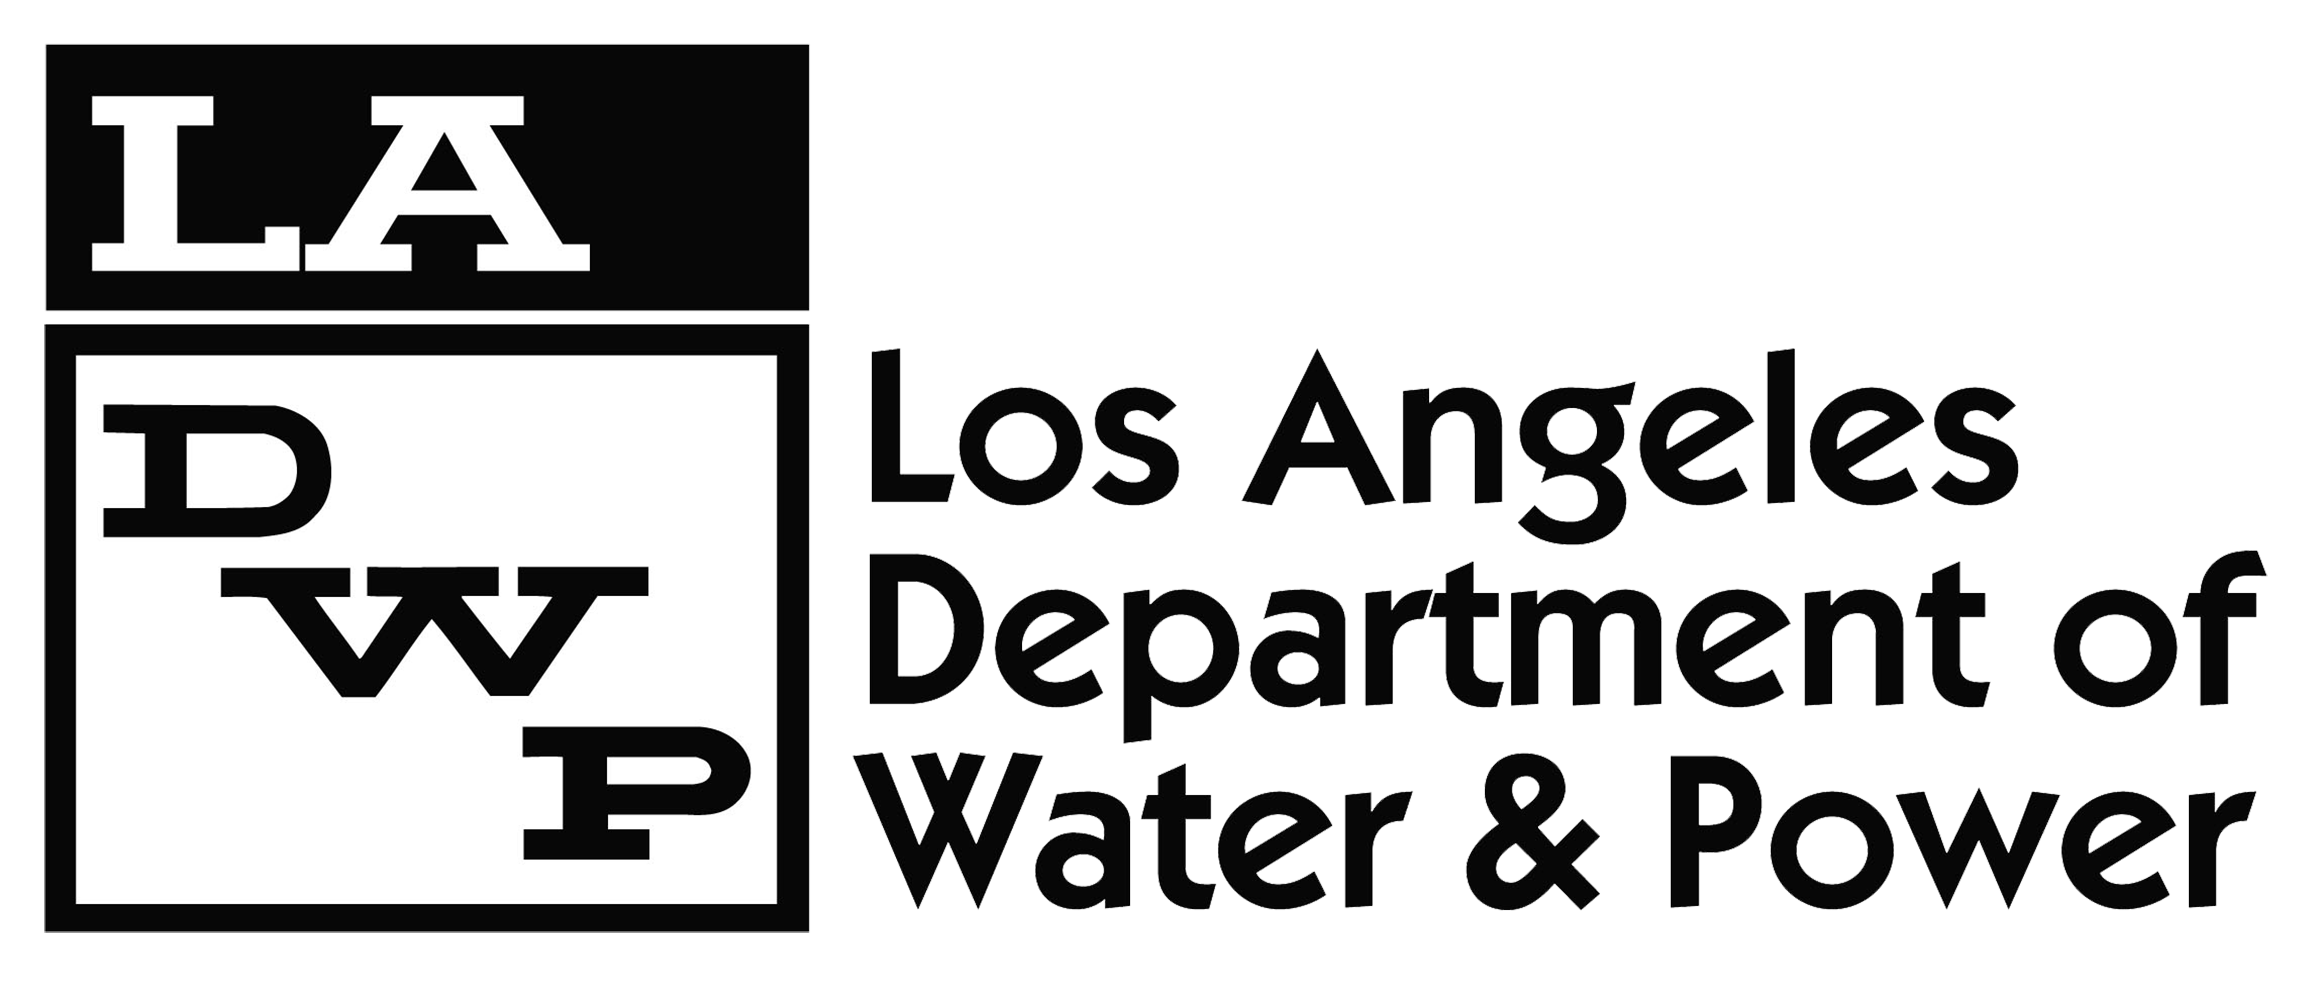 Los Angeles Department of Water and Power